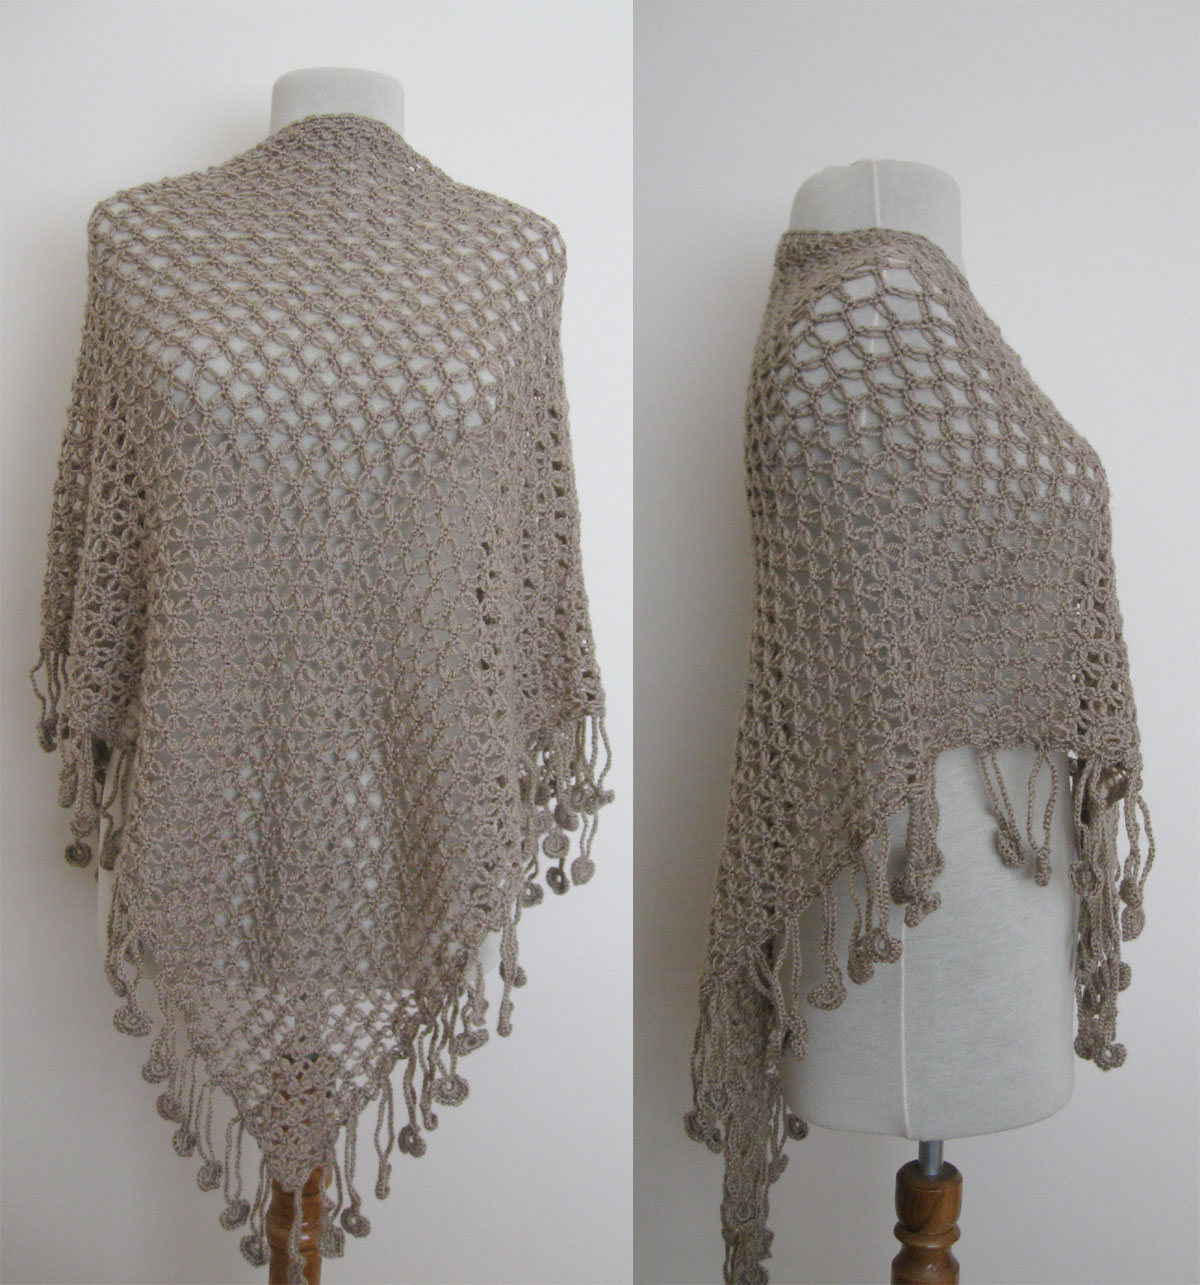 Knitting and beading wedding bridal accessories and free pattern taupe brown triangle shawl wrap shrug stole neckwarmer scarf wedding bridal bridesmaid ready to ship bankloansurffo Image collections